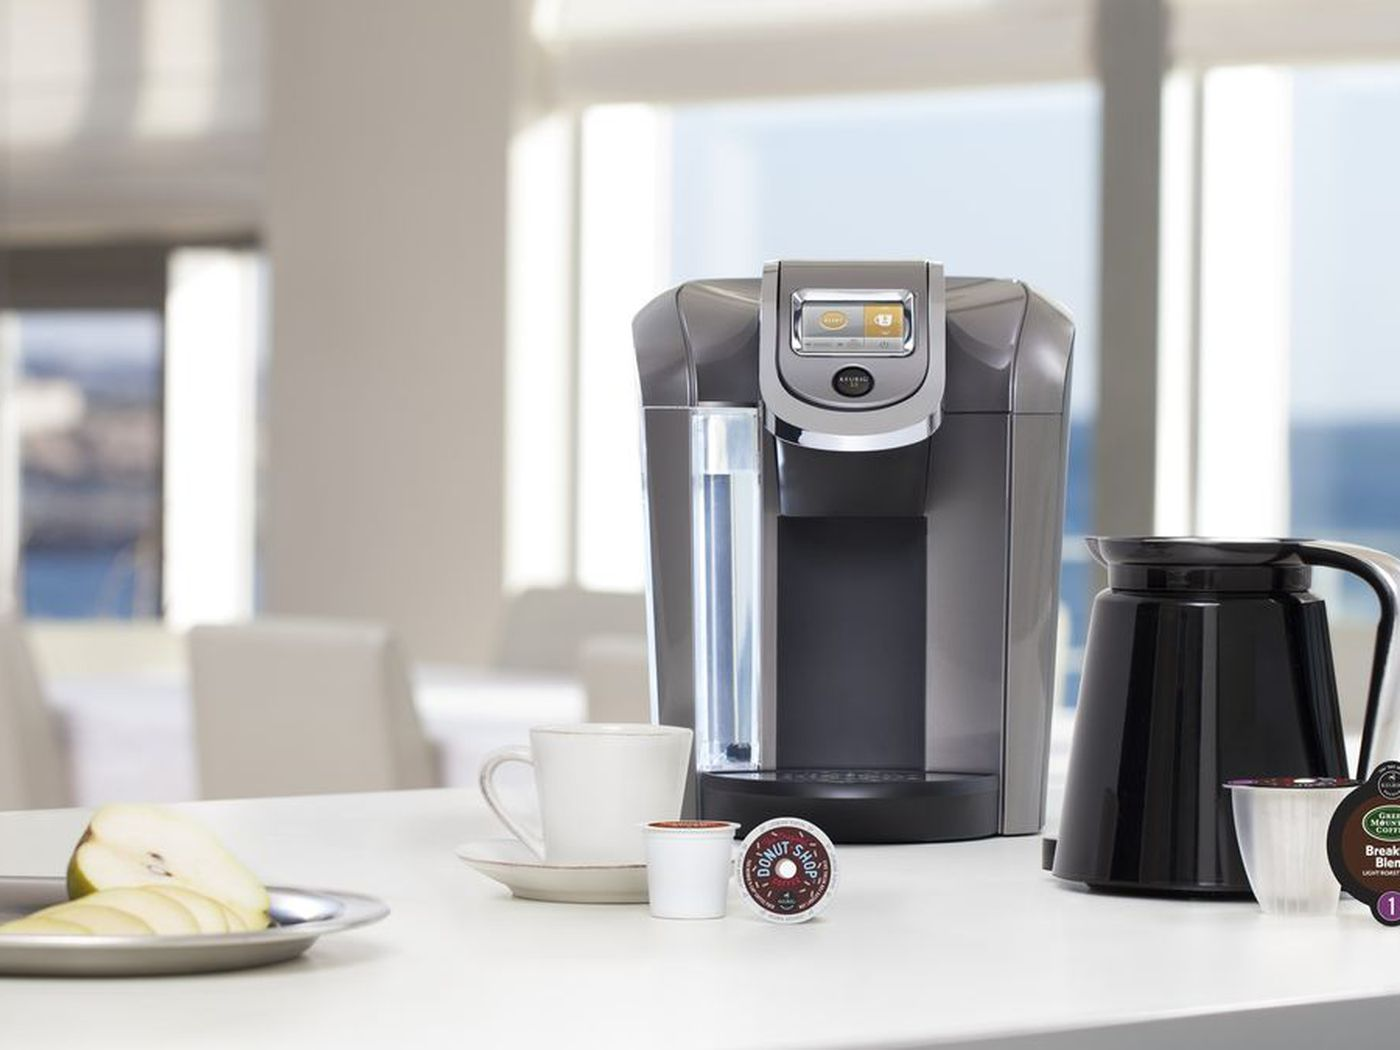 Keurigs Attempt To Drm Its Coffee Cups Totally Backfired The Verge